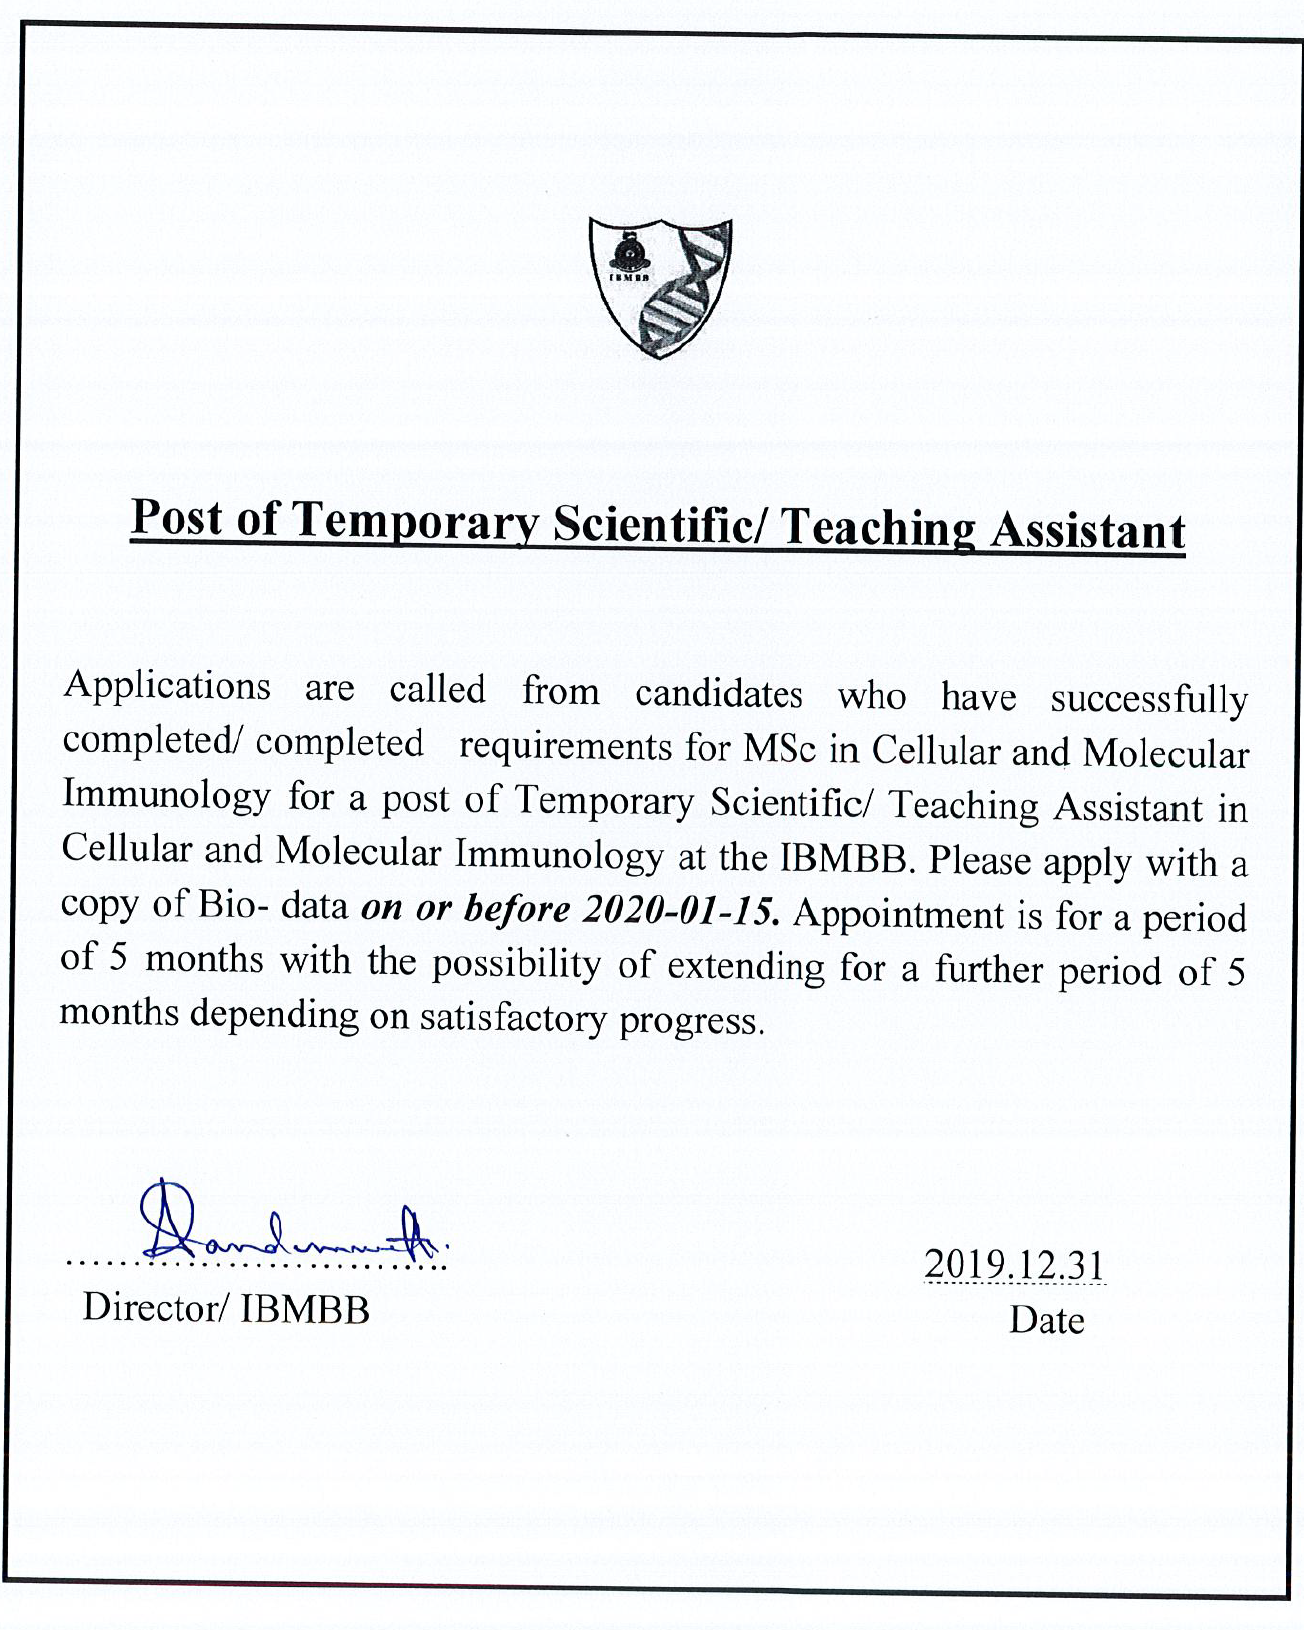 Post Of Temporary Scientific/ Teaching Assistant